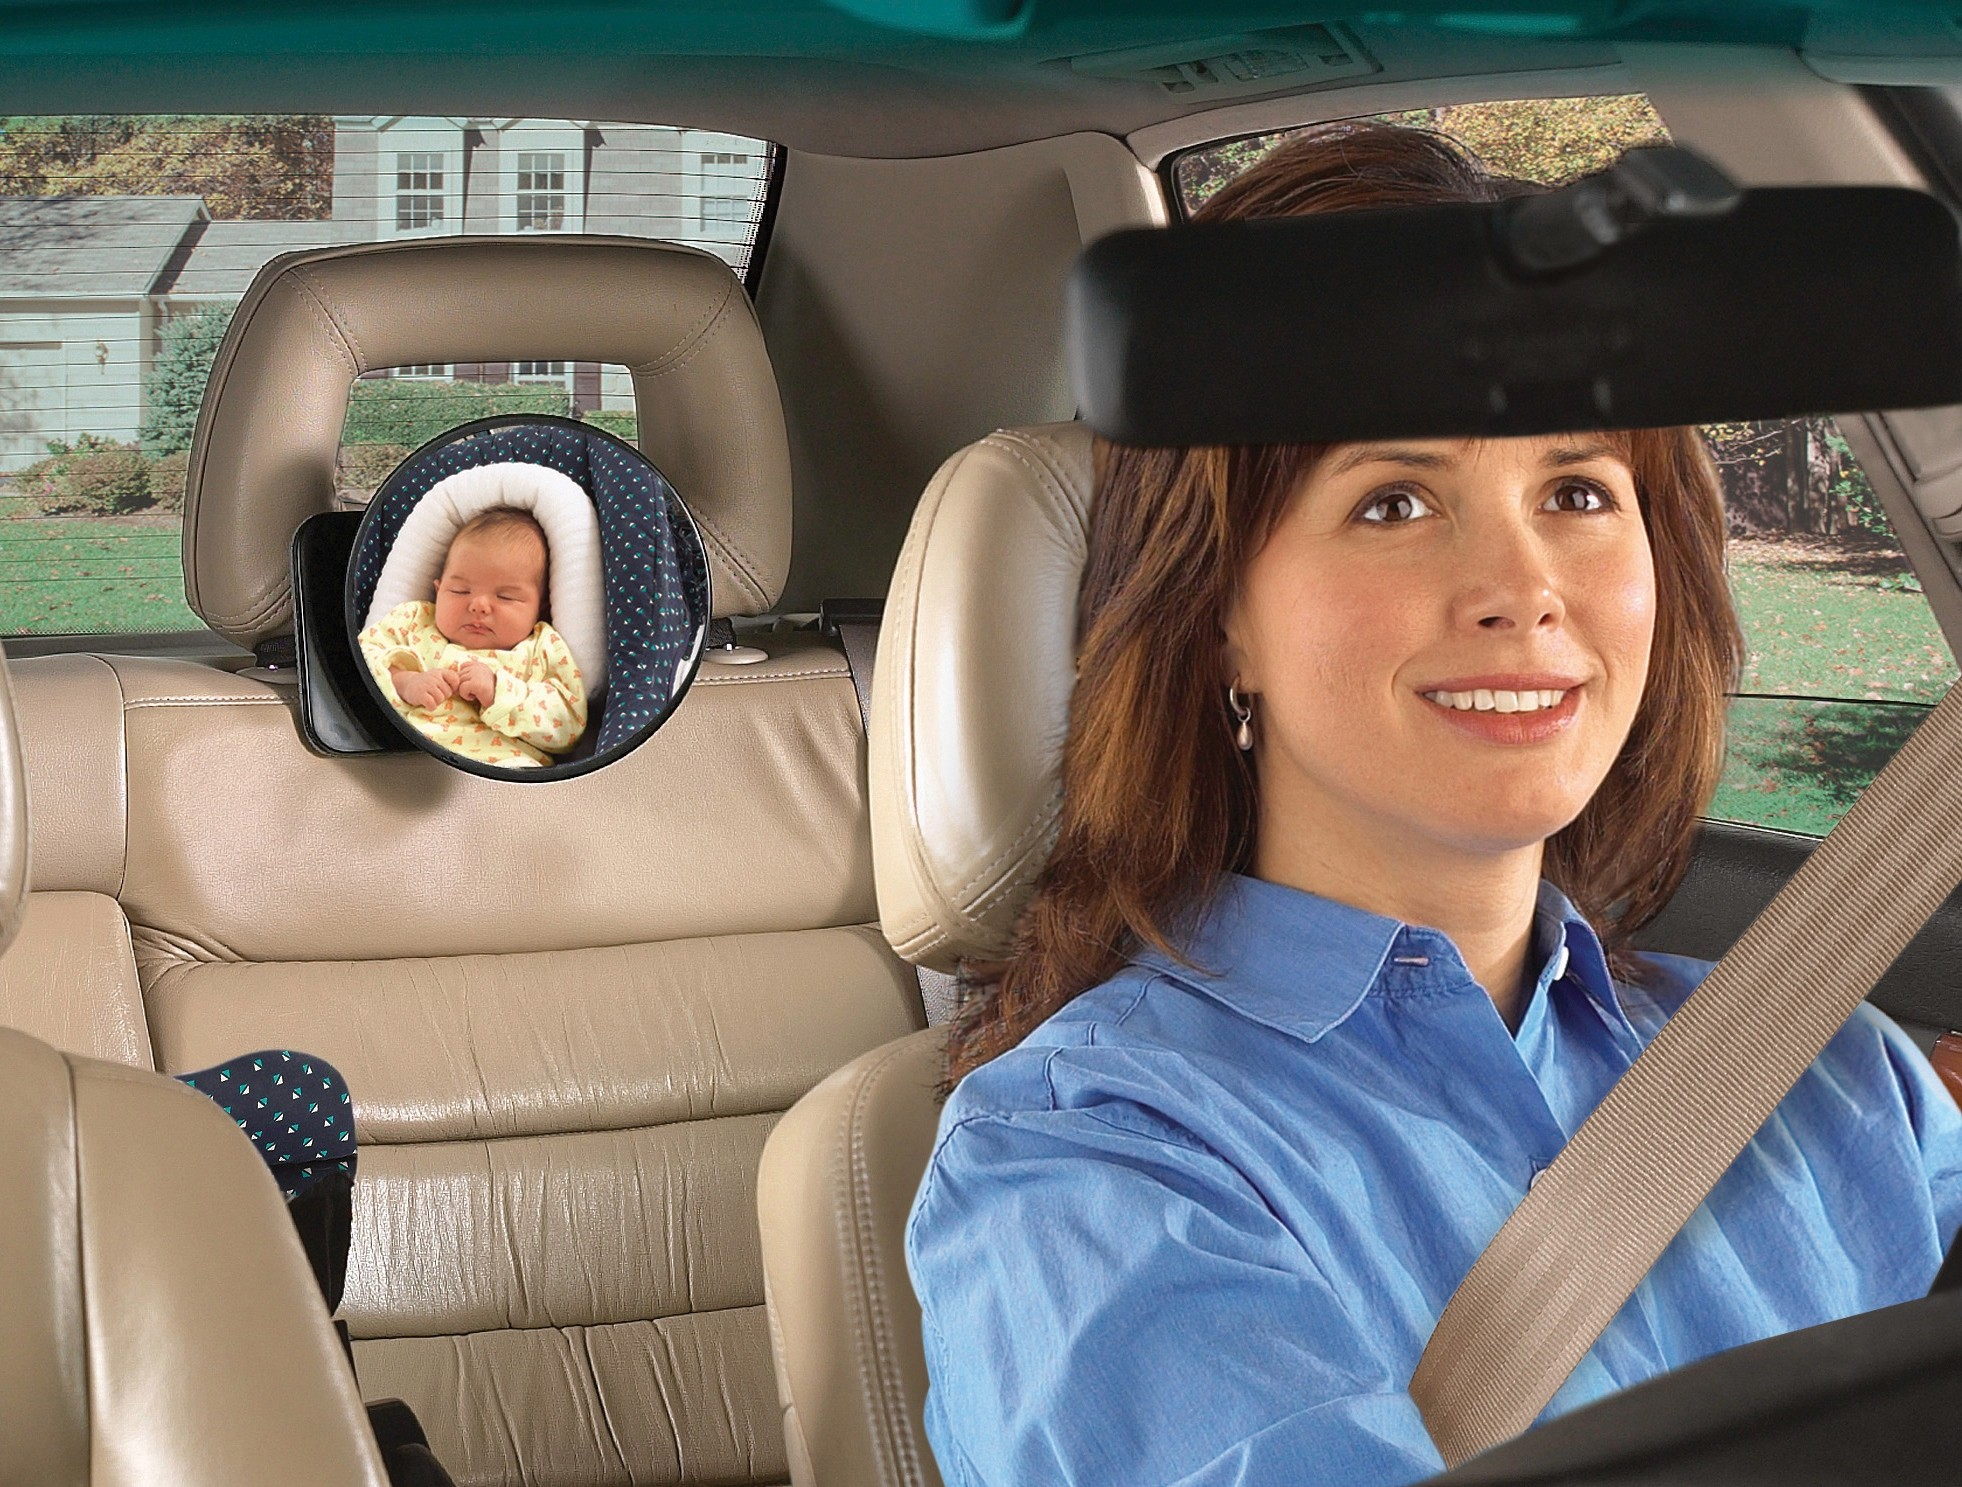 guide-to-child-car-seat-laws-and-safety_73996